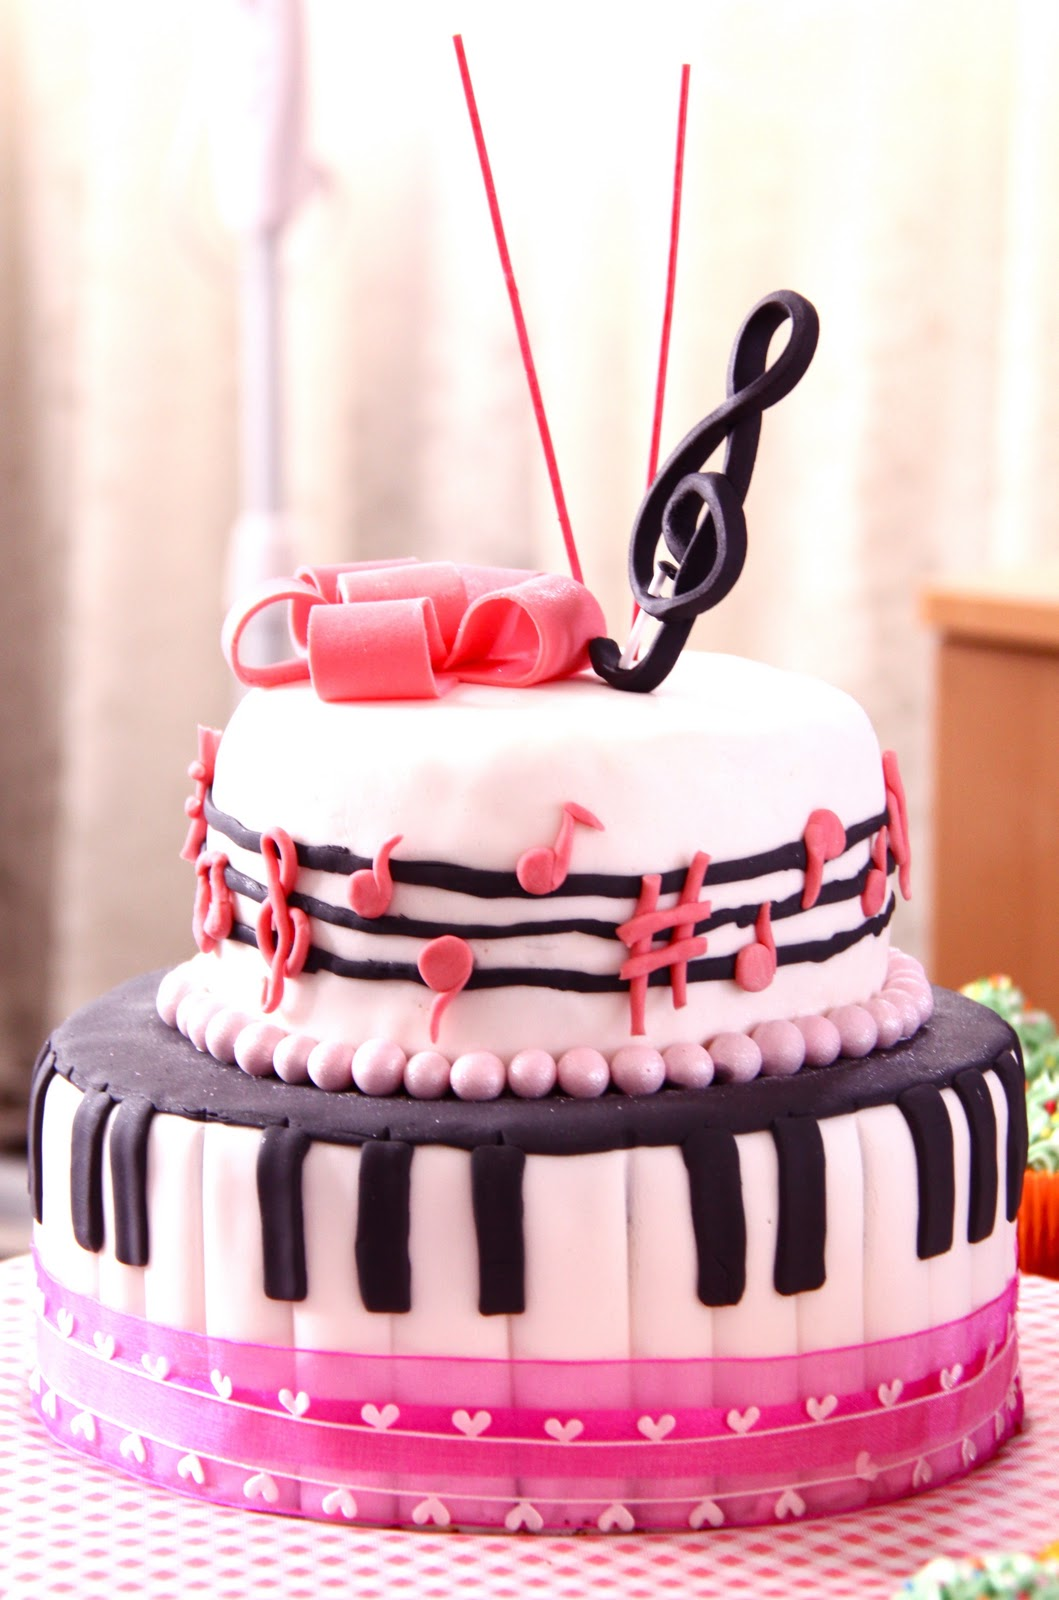 Sweet Art Cakes By Milbre Moments Rikkas Musical Birthday Cake